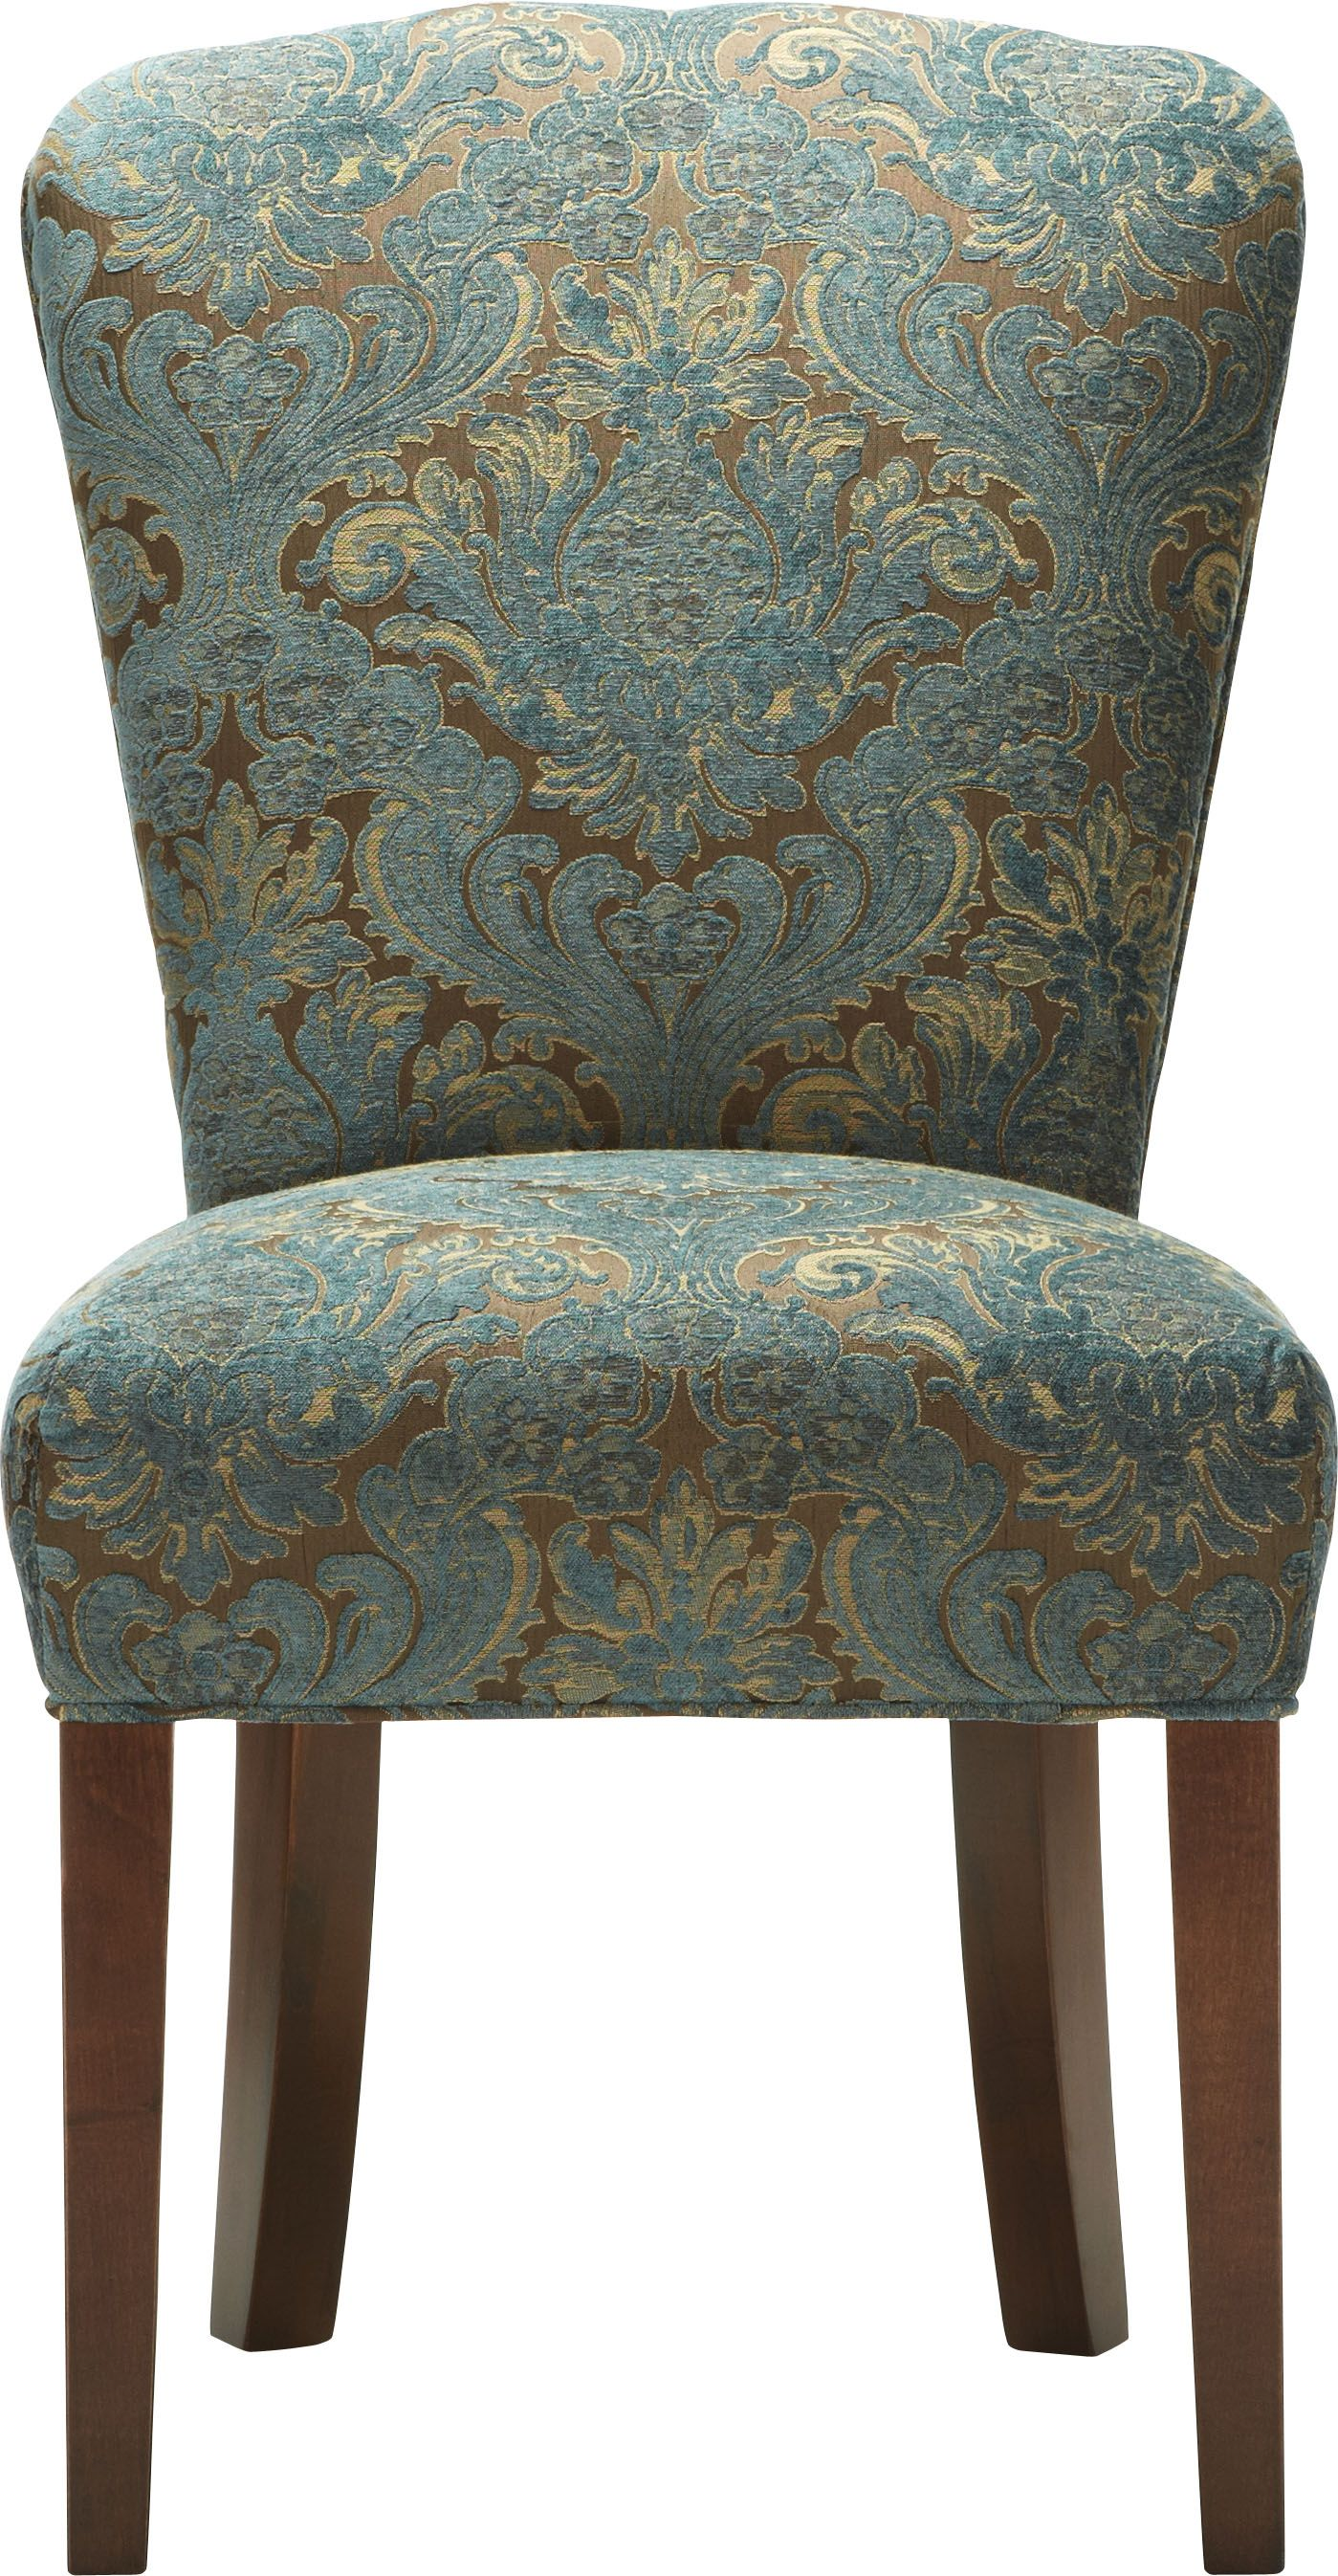 Blue Leather Dining Chairs Stately Dinner Seating The Harman Dining Chair In Arhaus